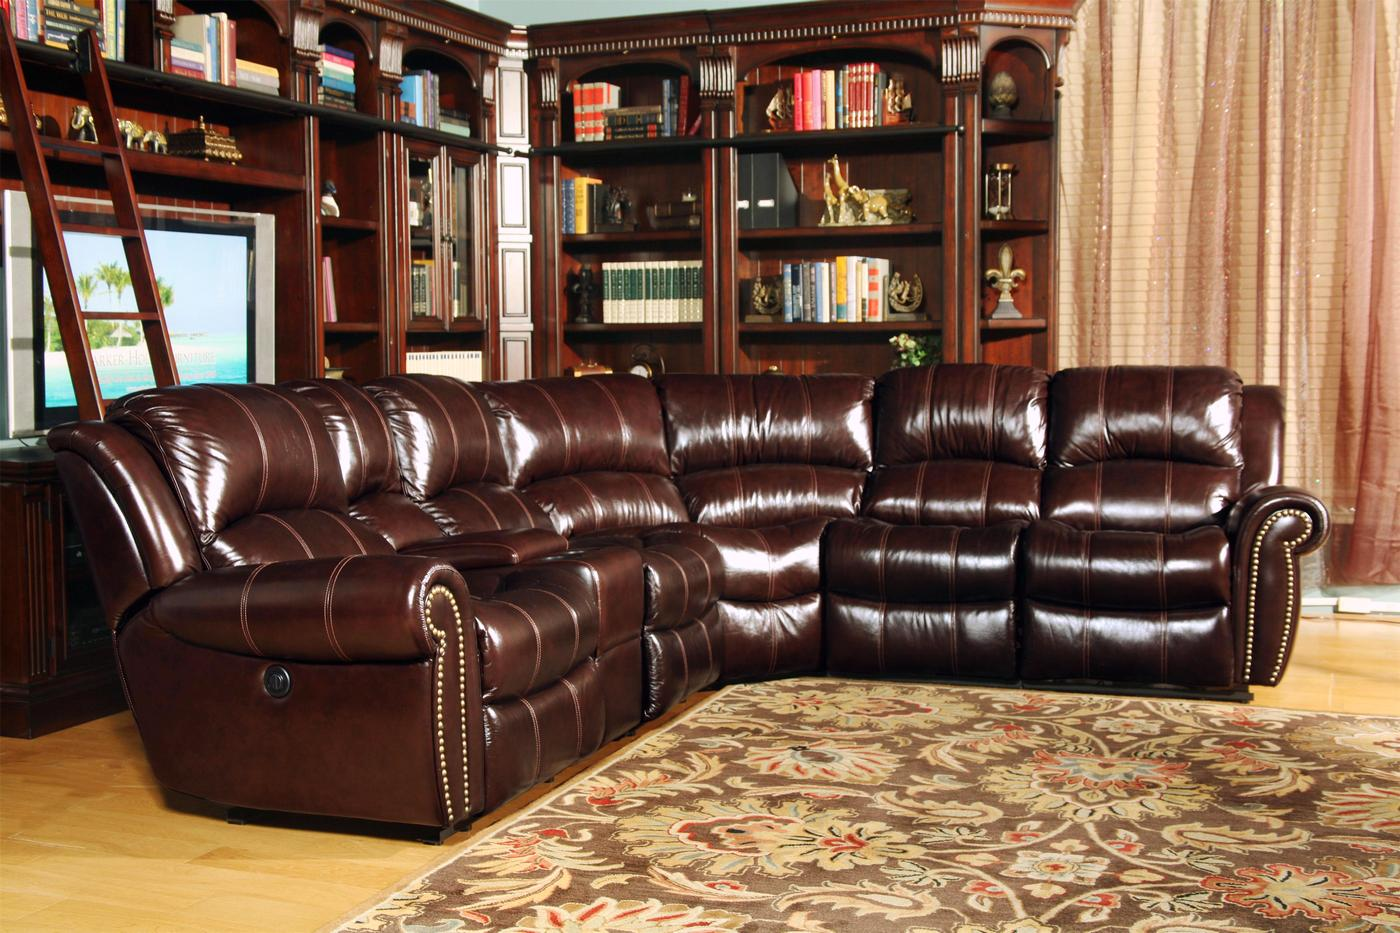 parker 2 piece sofa and loveseat in brown bed bath beyond canada covers living poseidon dark top grain leather